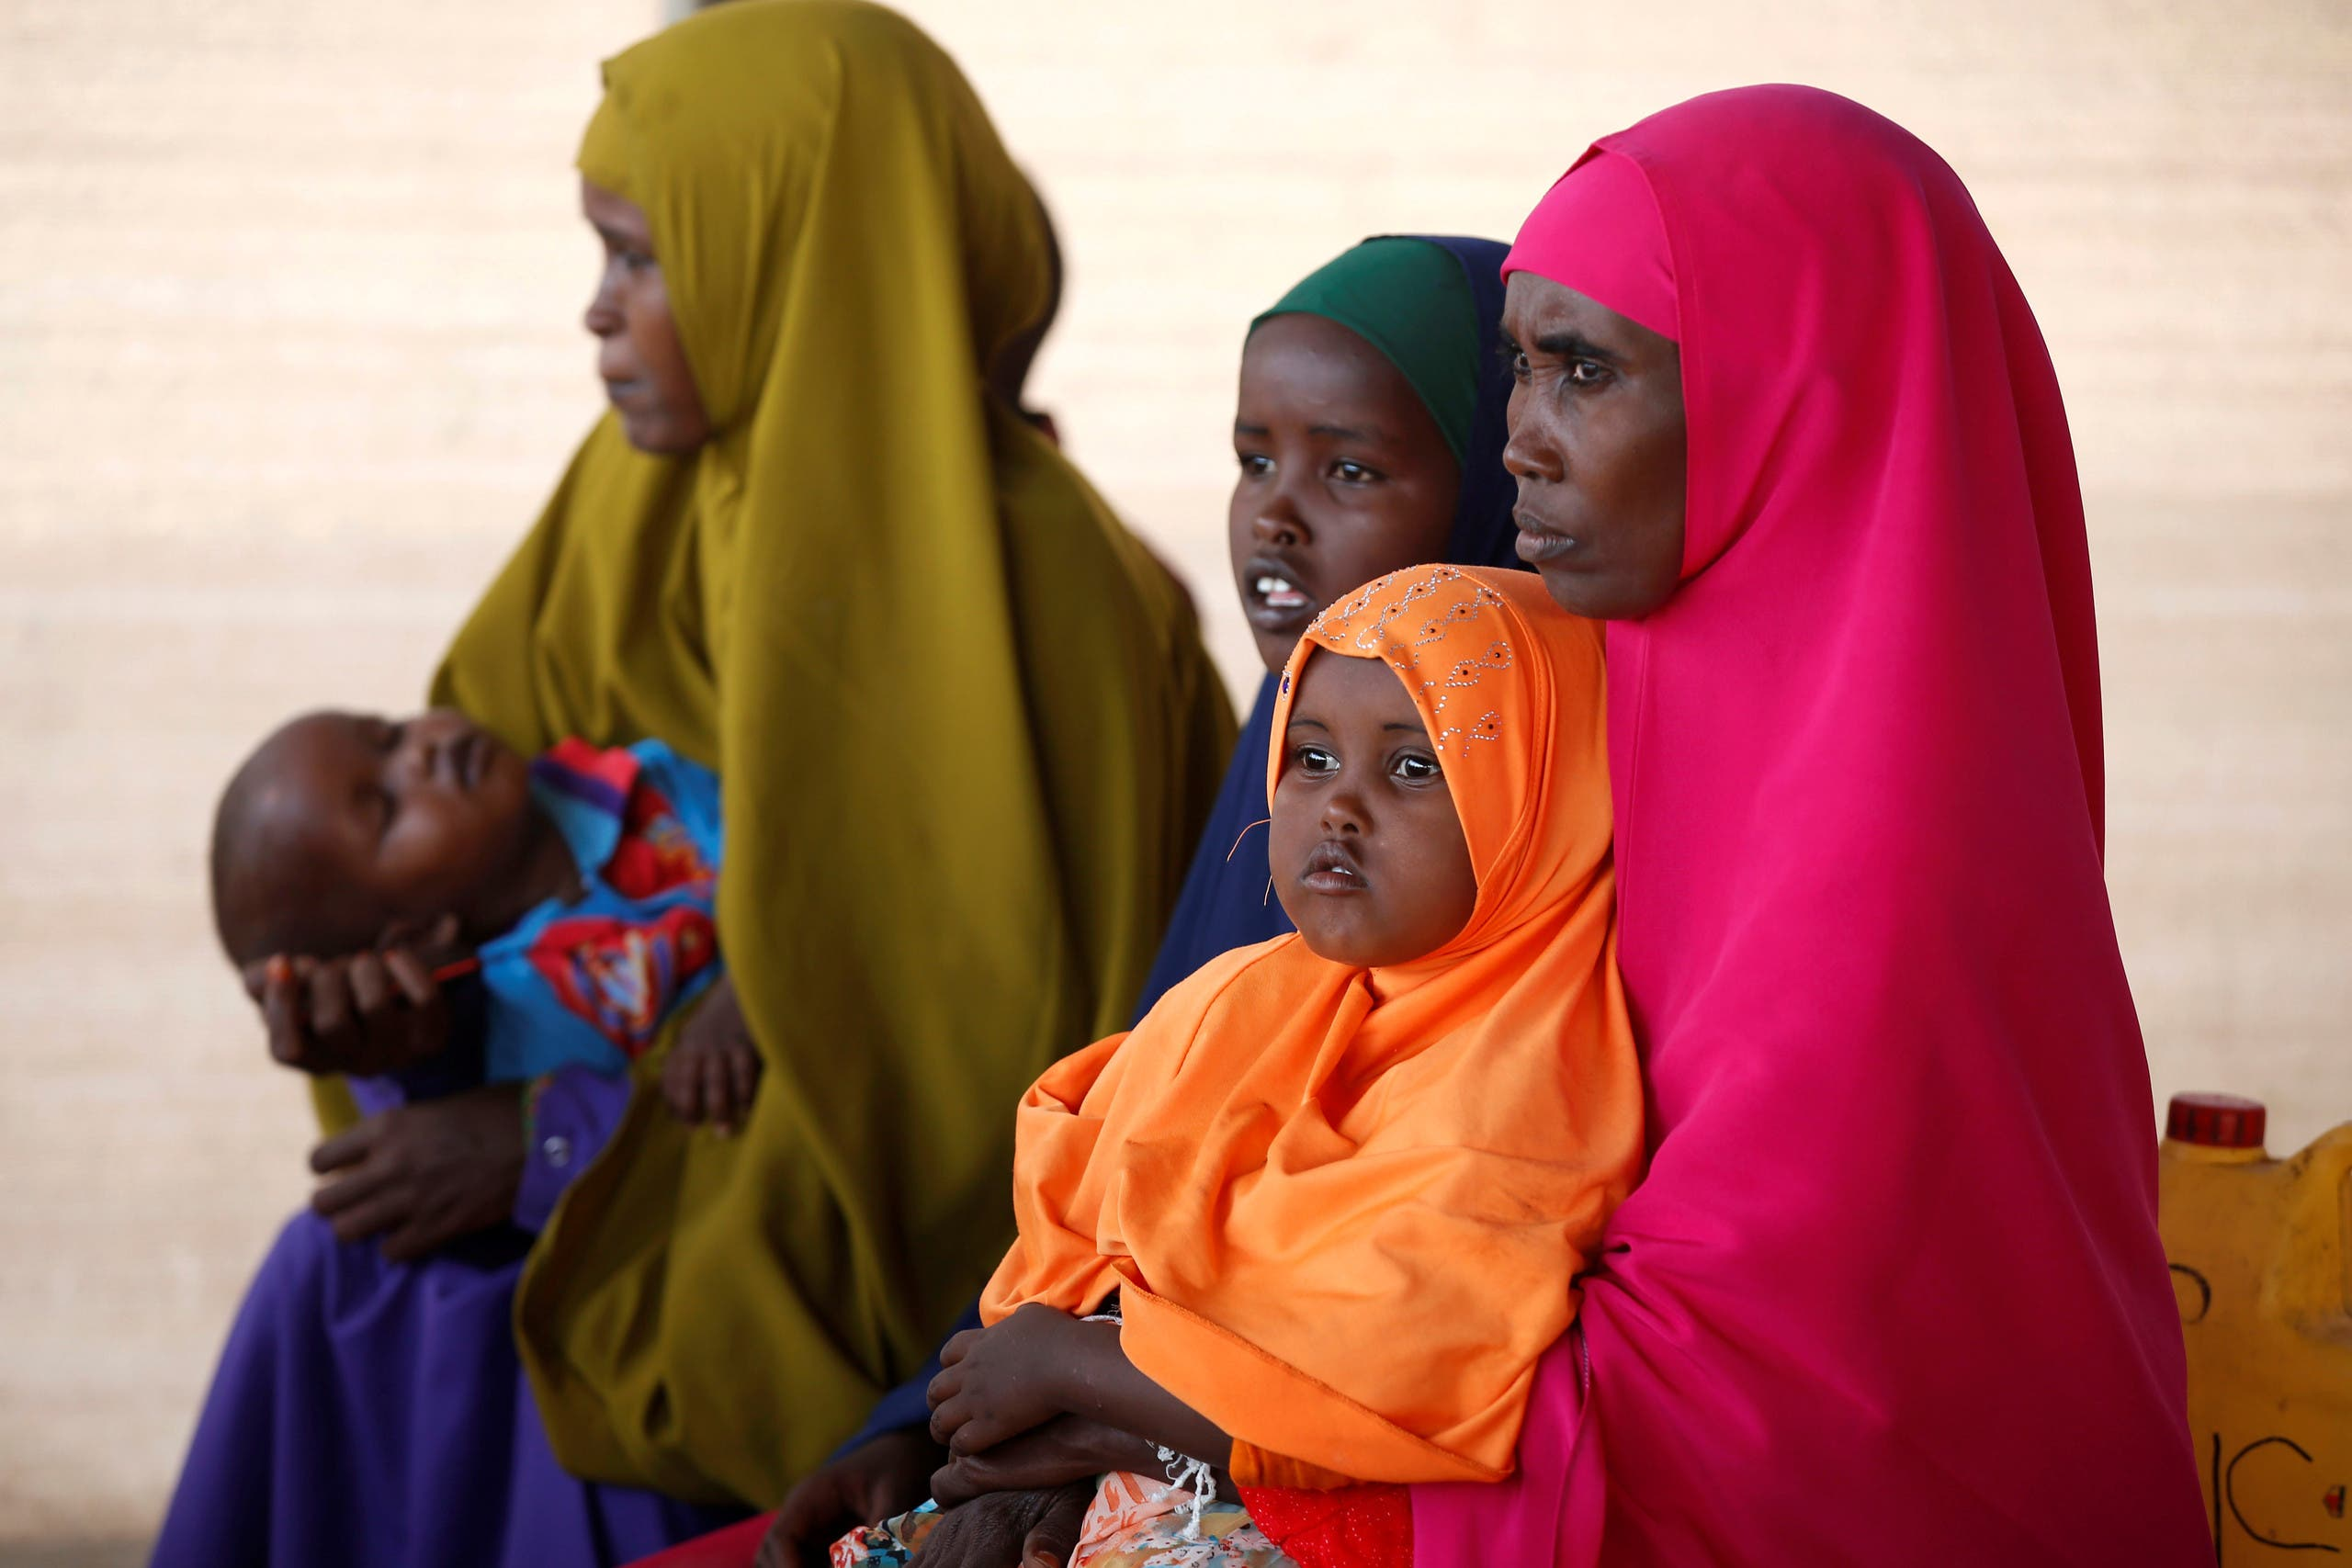 Somali refugees waits to board a UN plane bound for Somalia, part of the UN's Voluntary Repatriation programme, in the Dadaab refugee camp, Kenya December 19, 2017. REUTERS/Baz Ratner